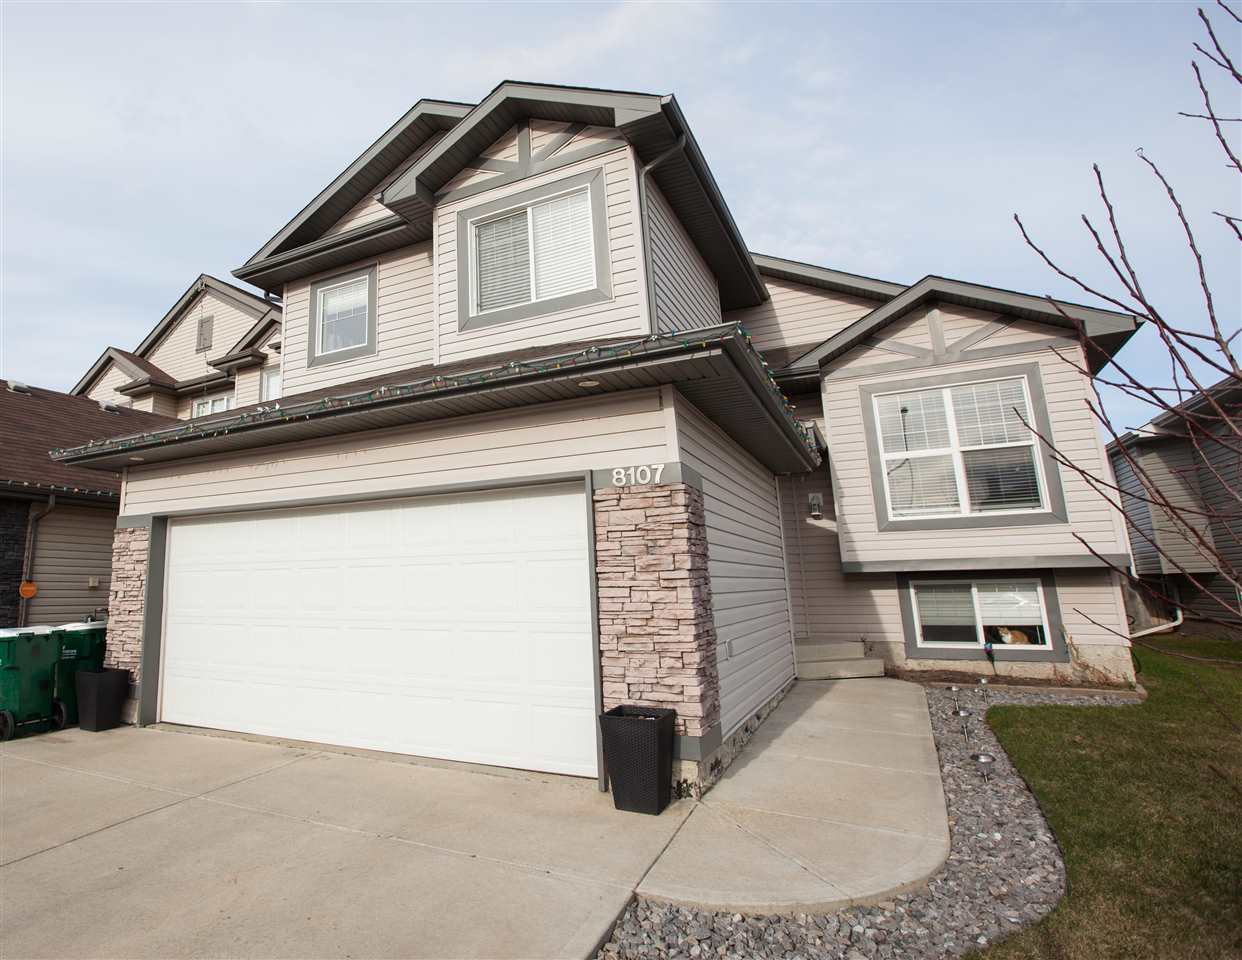 Main Photo: 8107 94 Street: Morinville House for sale : MLS(r) # E4061892